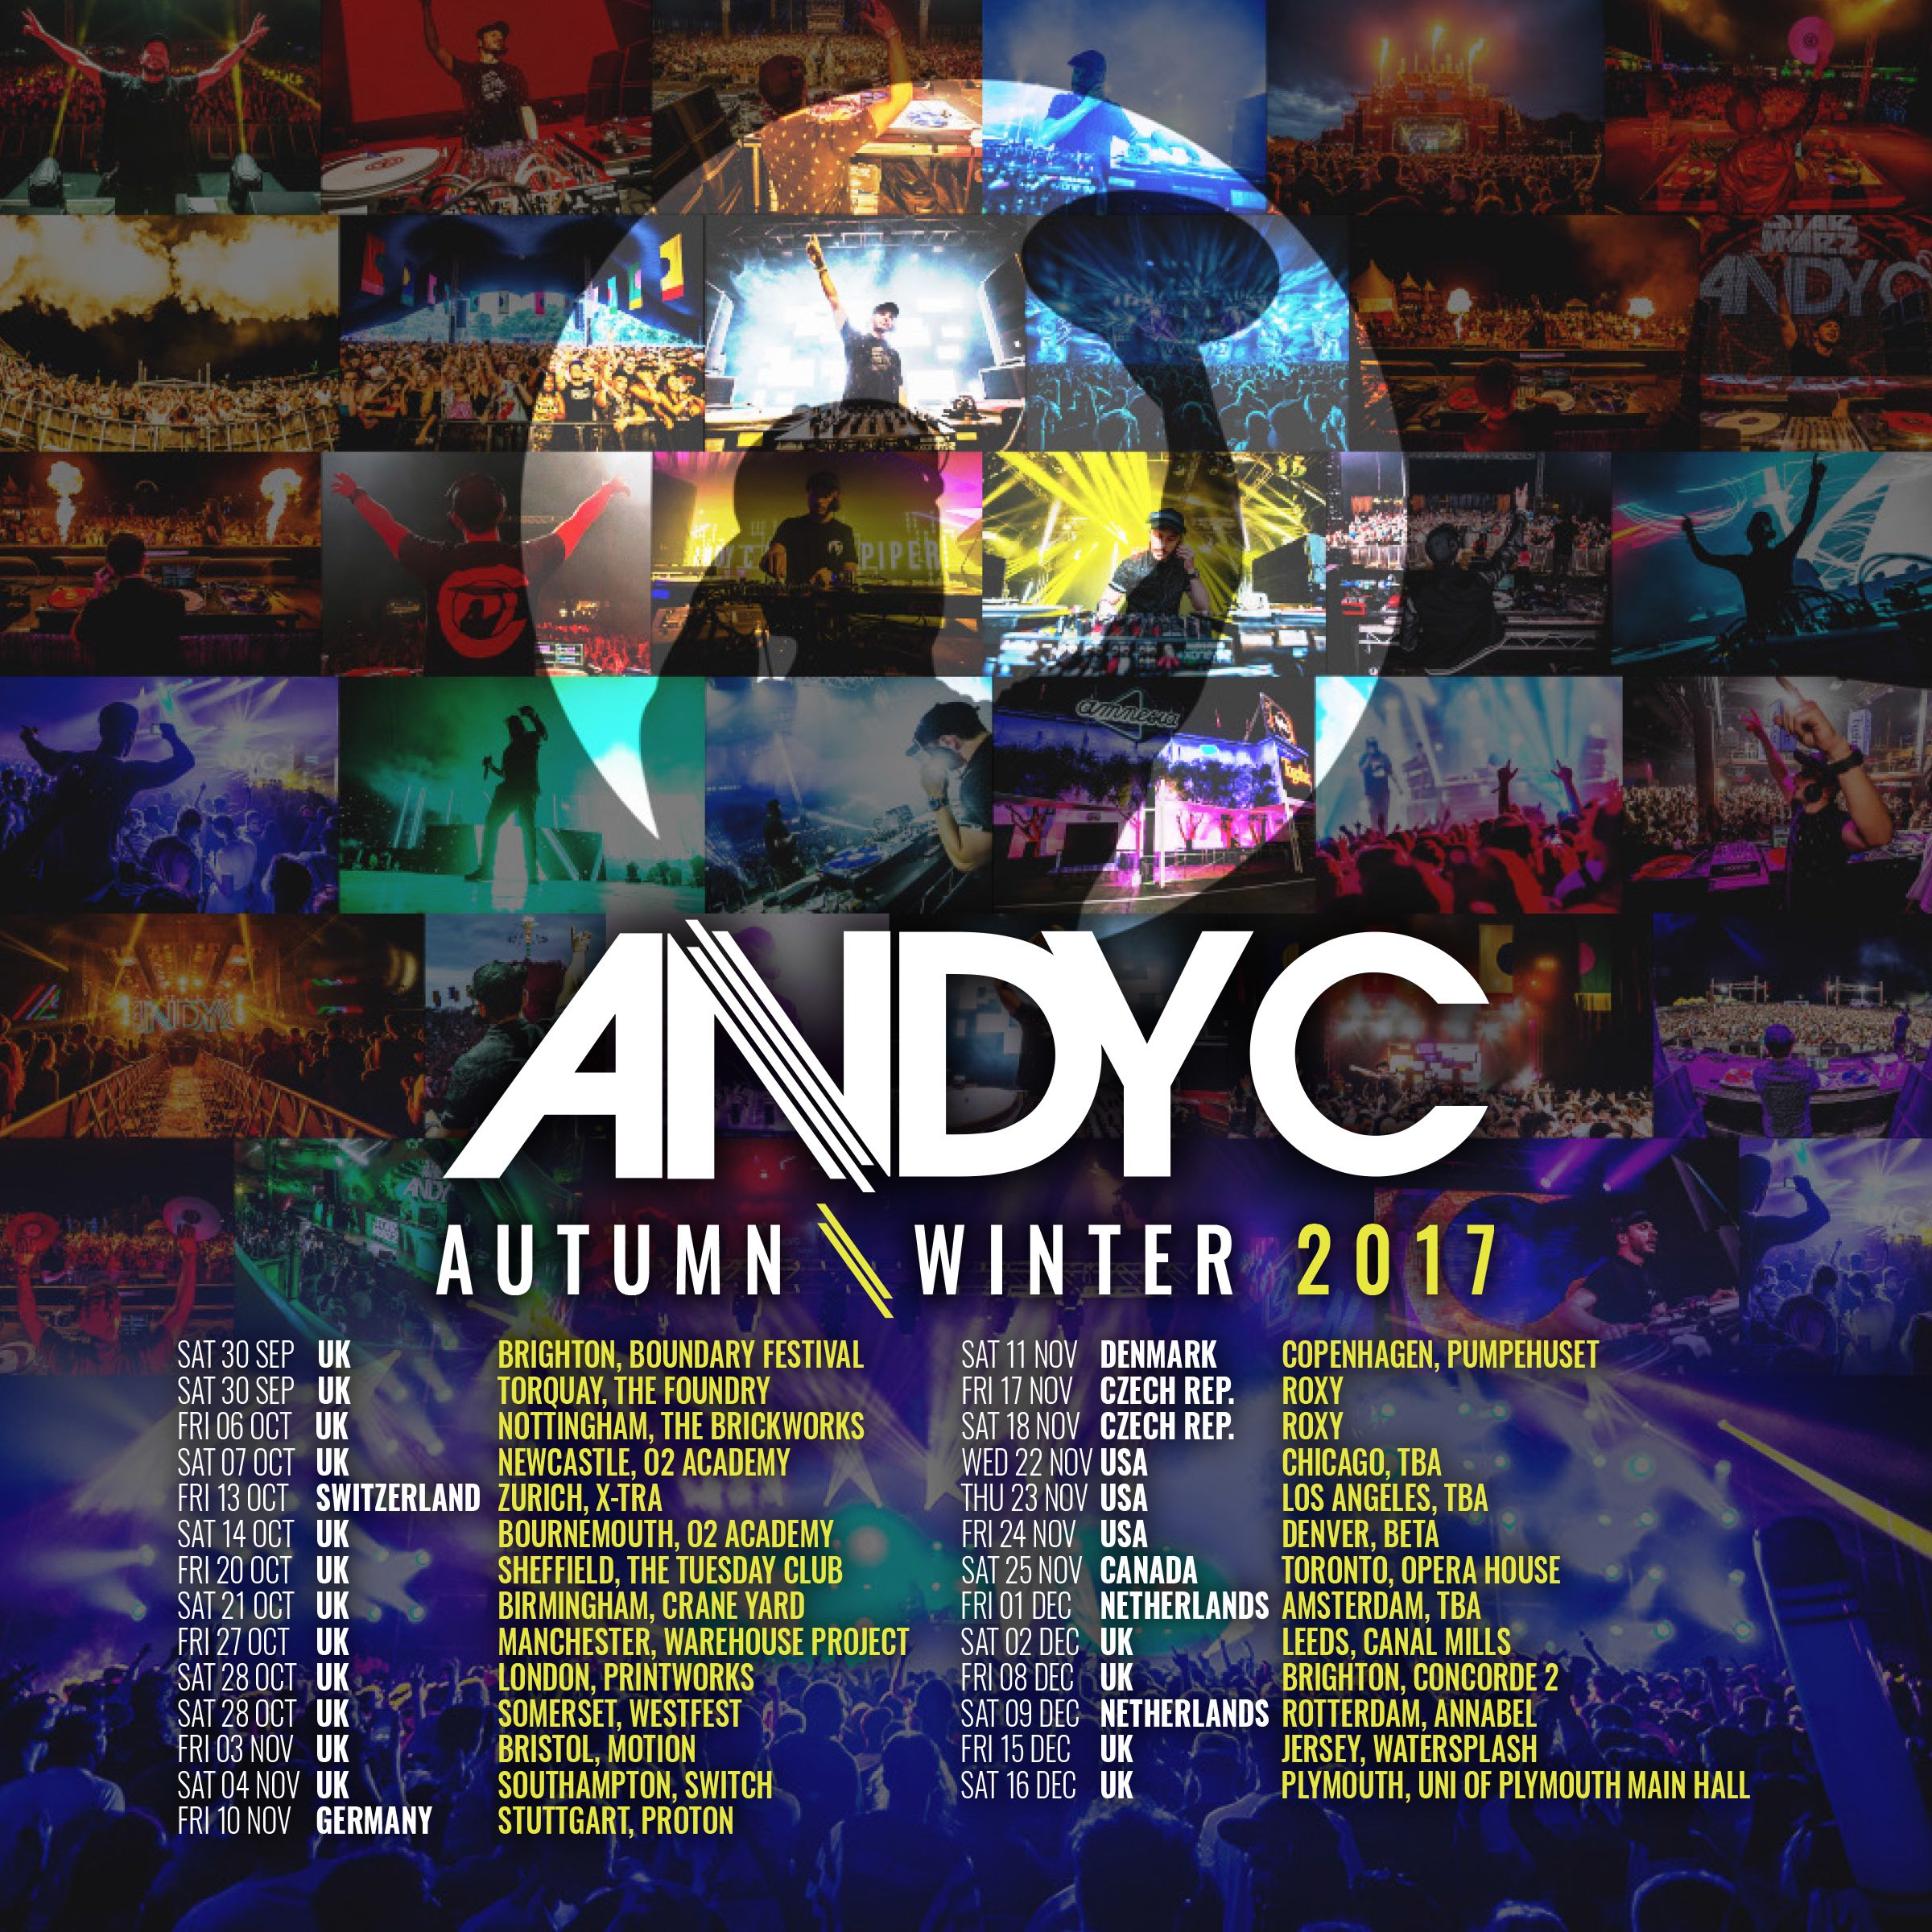 Andy announces first of Autumn/Winter dates